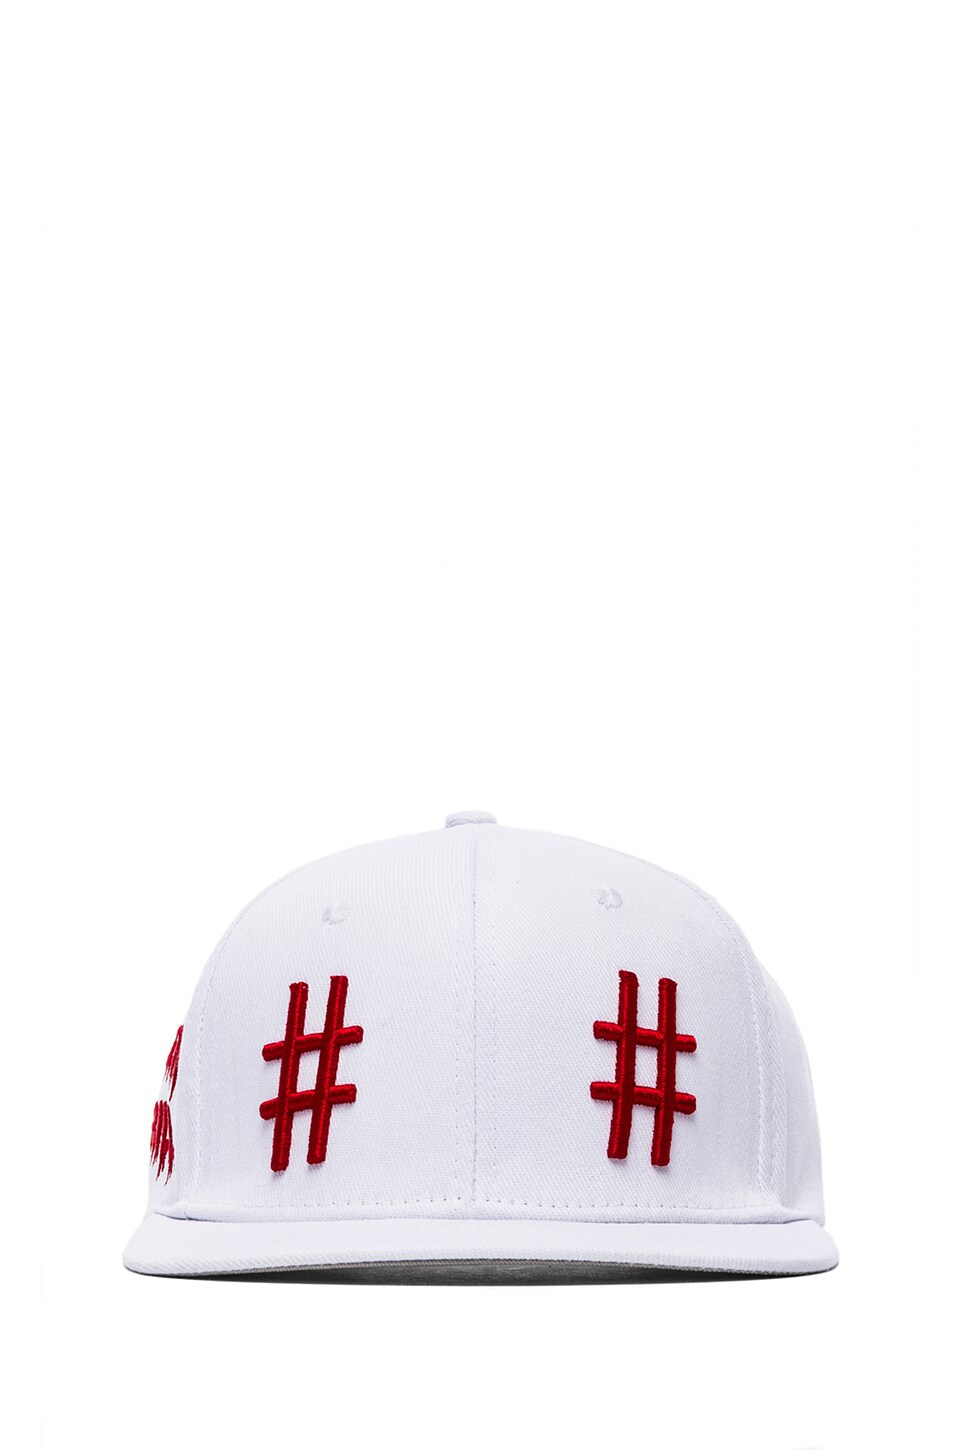 Been Trill Team Hat in White and Red